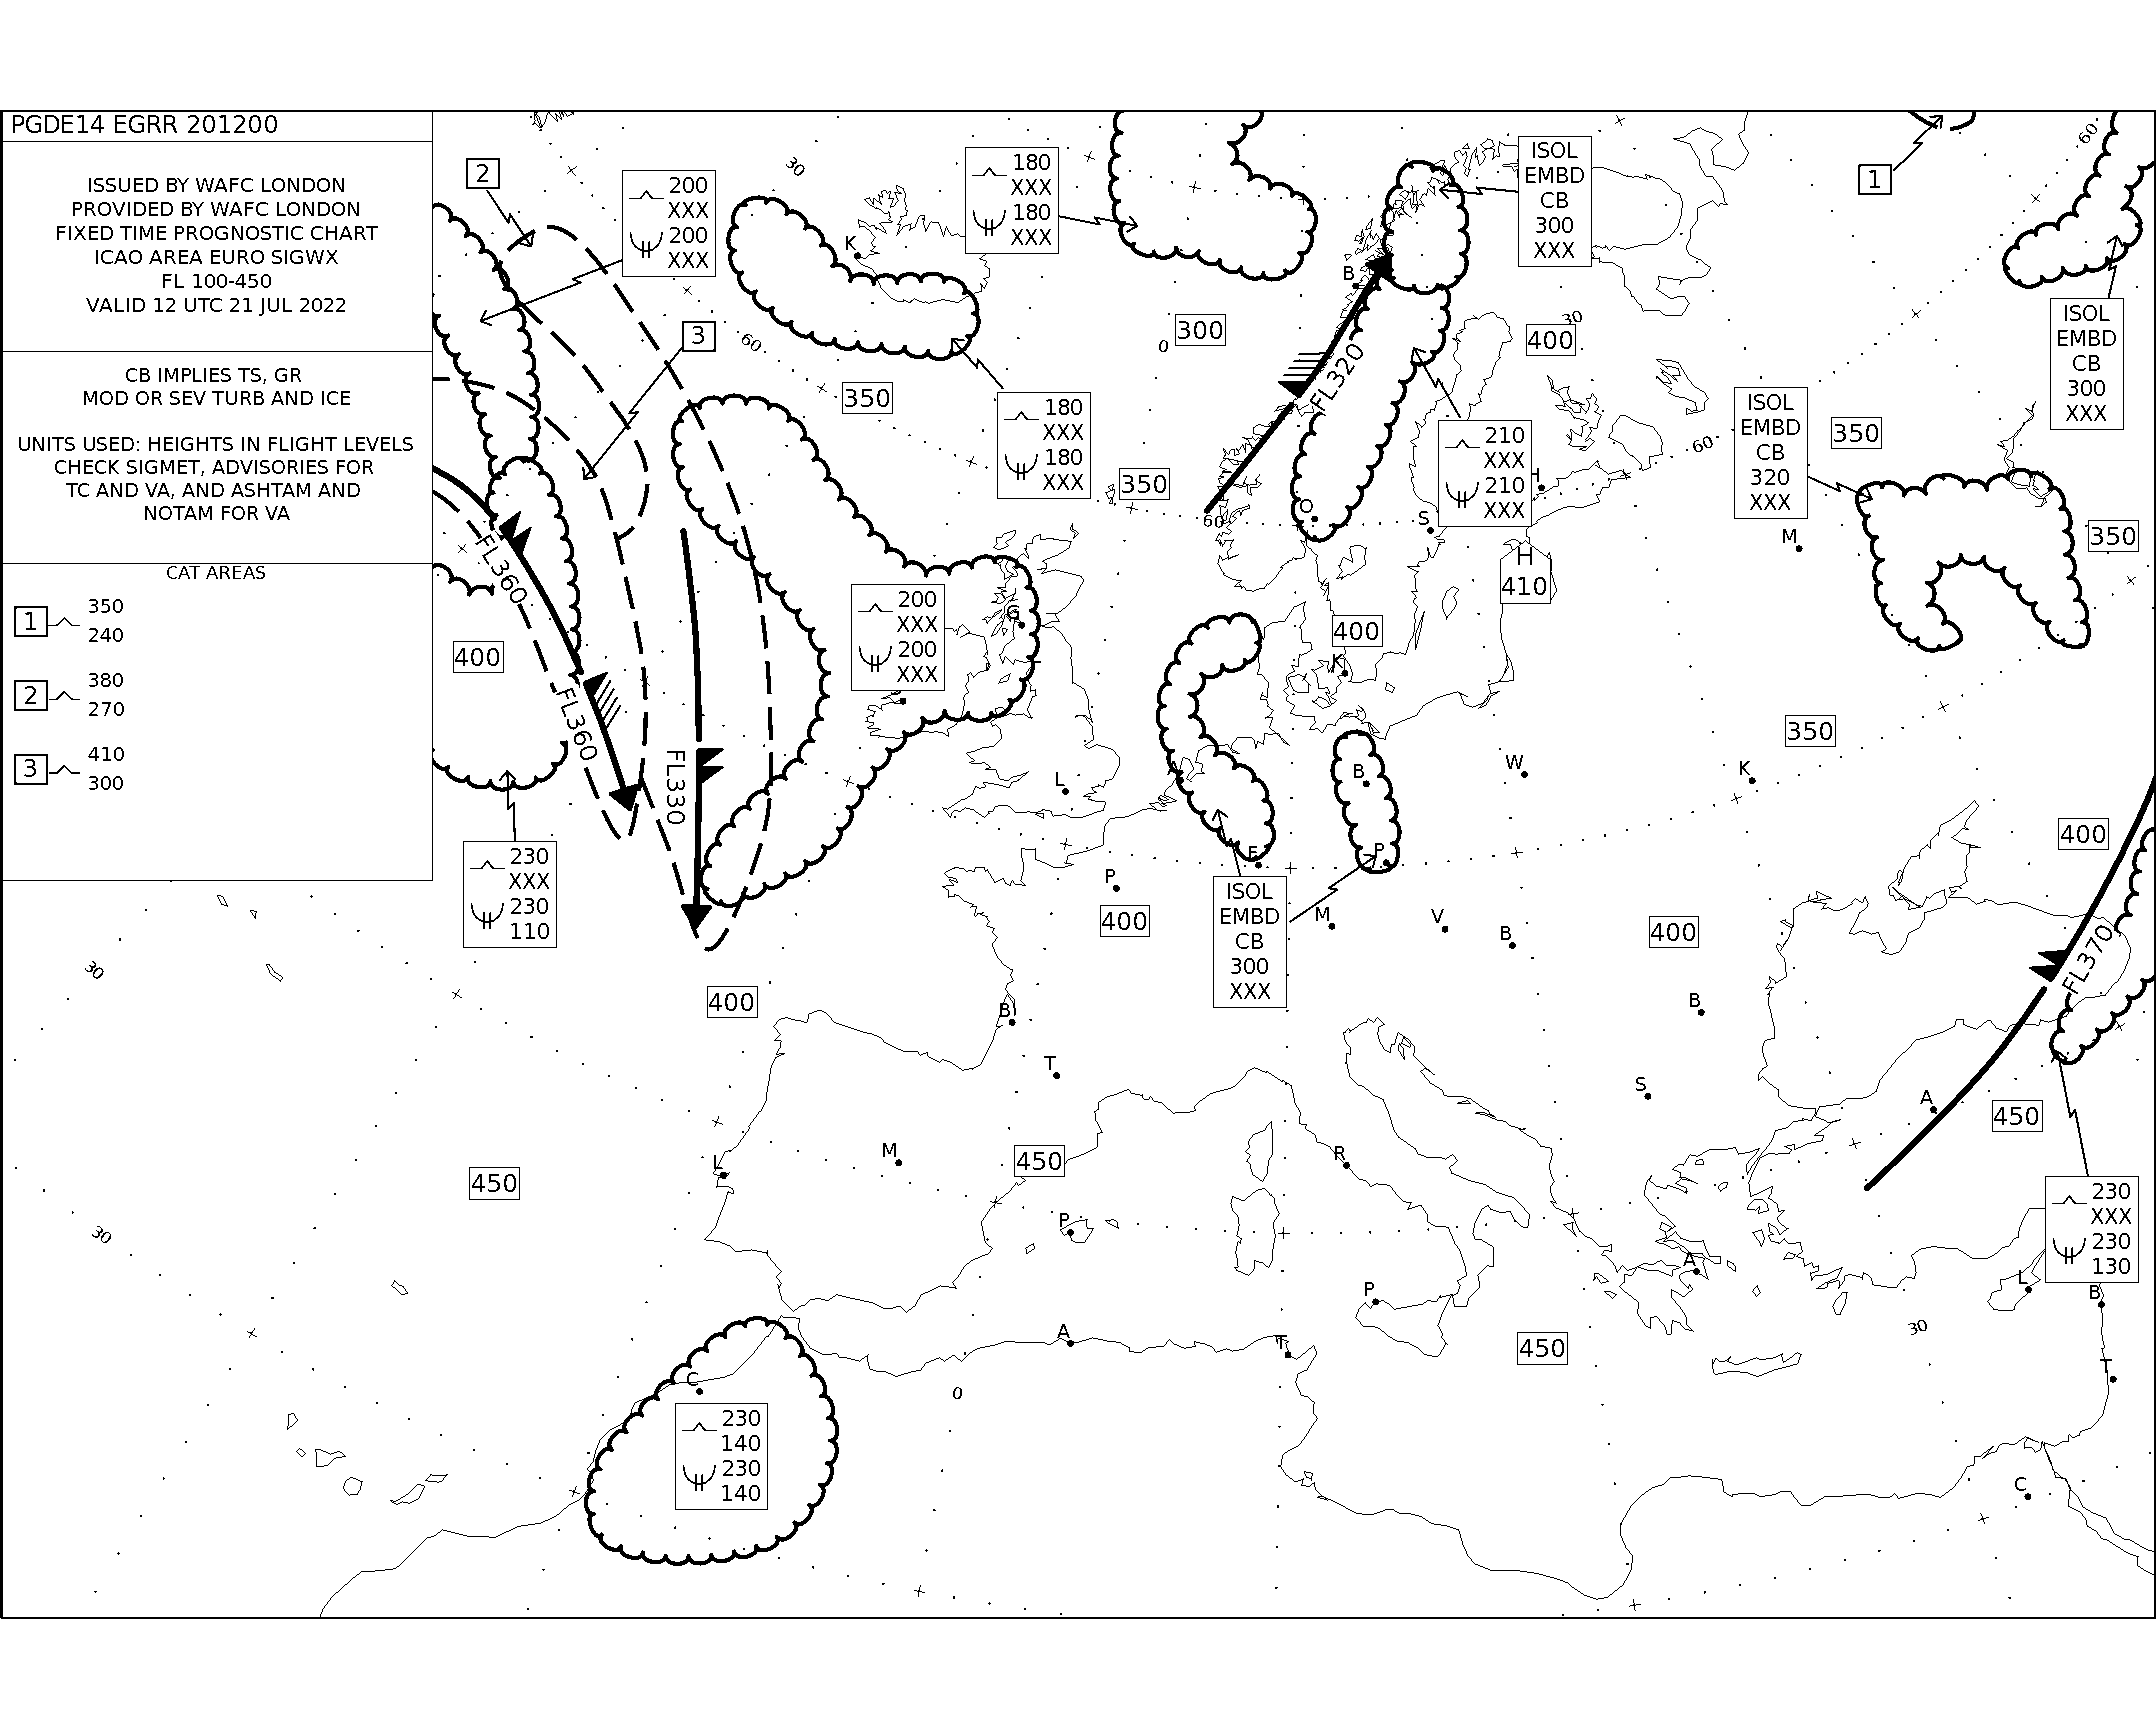 map for Polar Route Europe Atlantic Turbulence Maps - 12 UTC